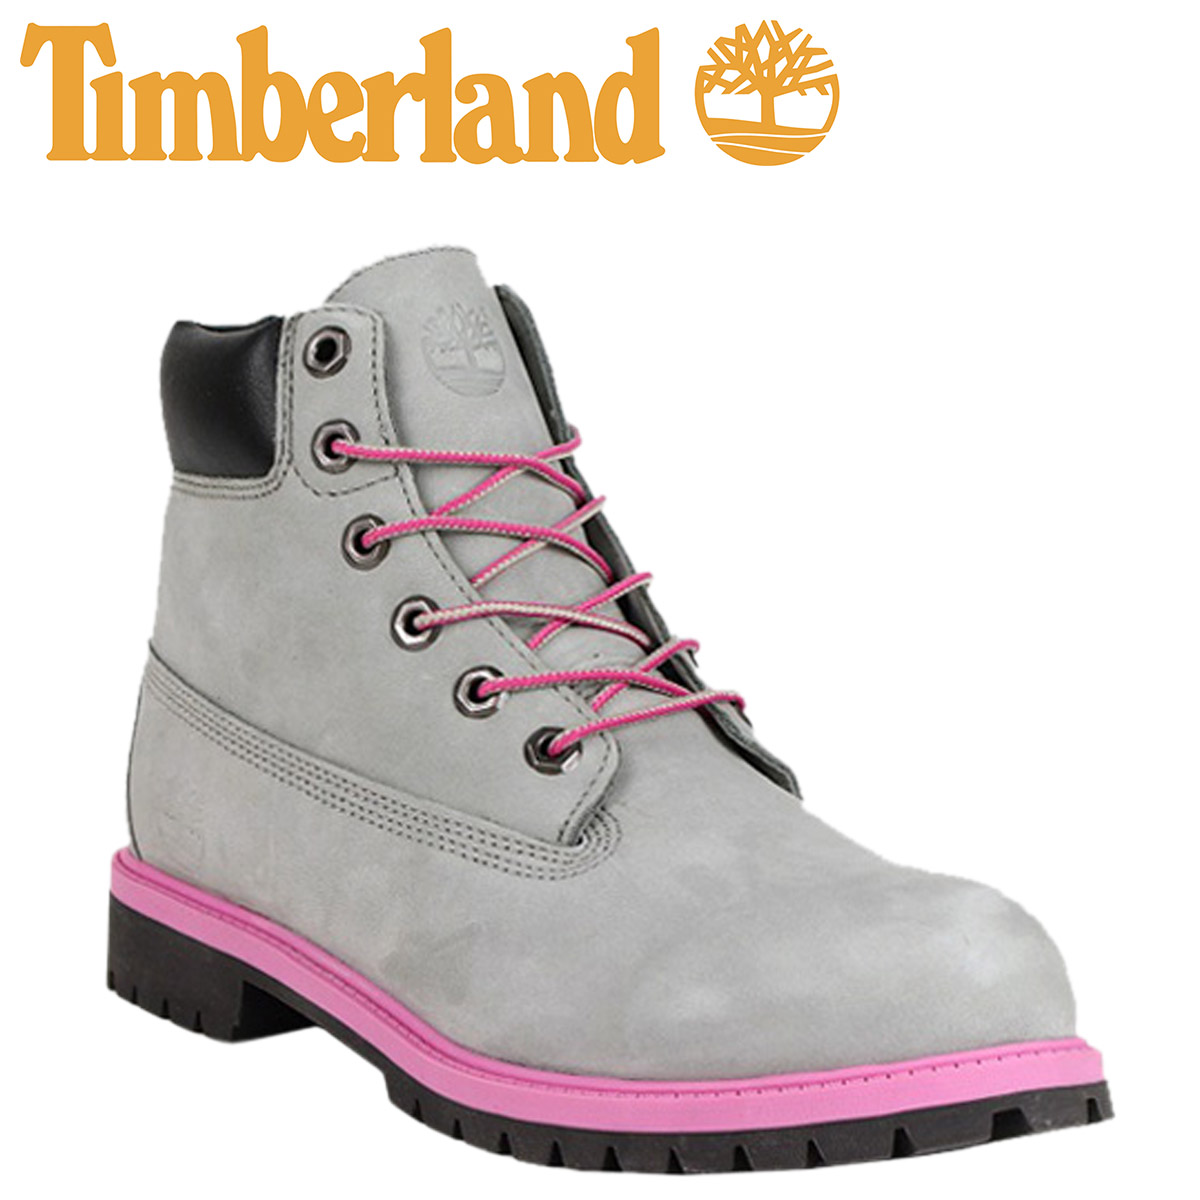 SOLD OUT  Timberland Timberland 6 inch premium boot gray 3194R 6INCH  PREMIUM BOOT junior kids child GREY GS Womens 14cbe7502